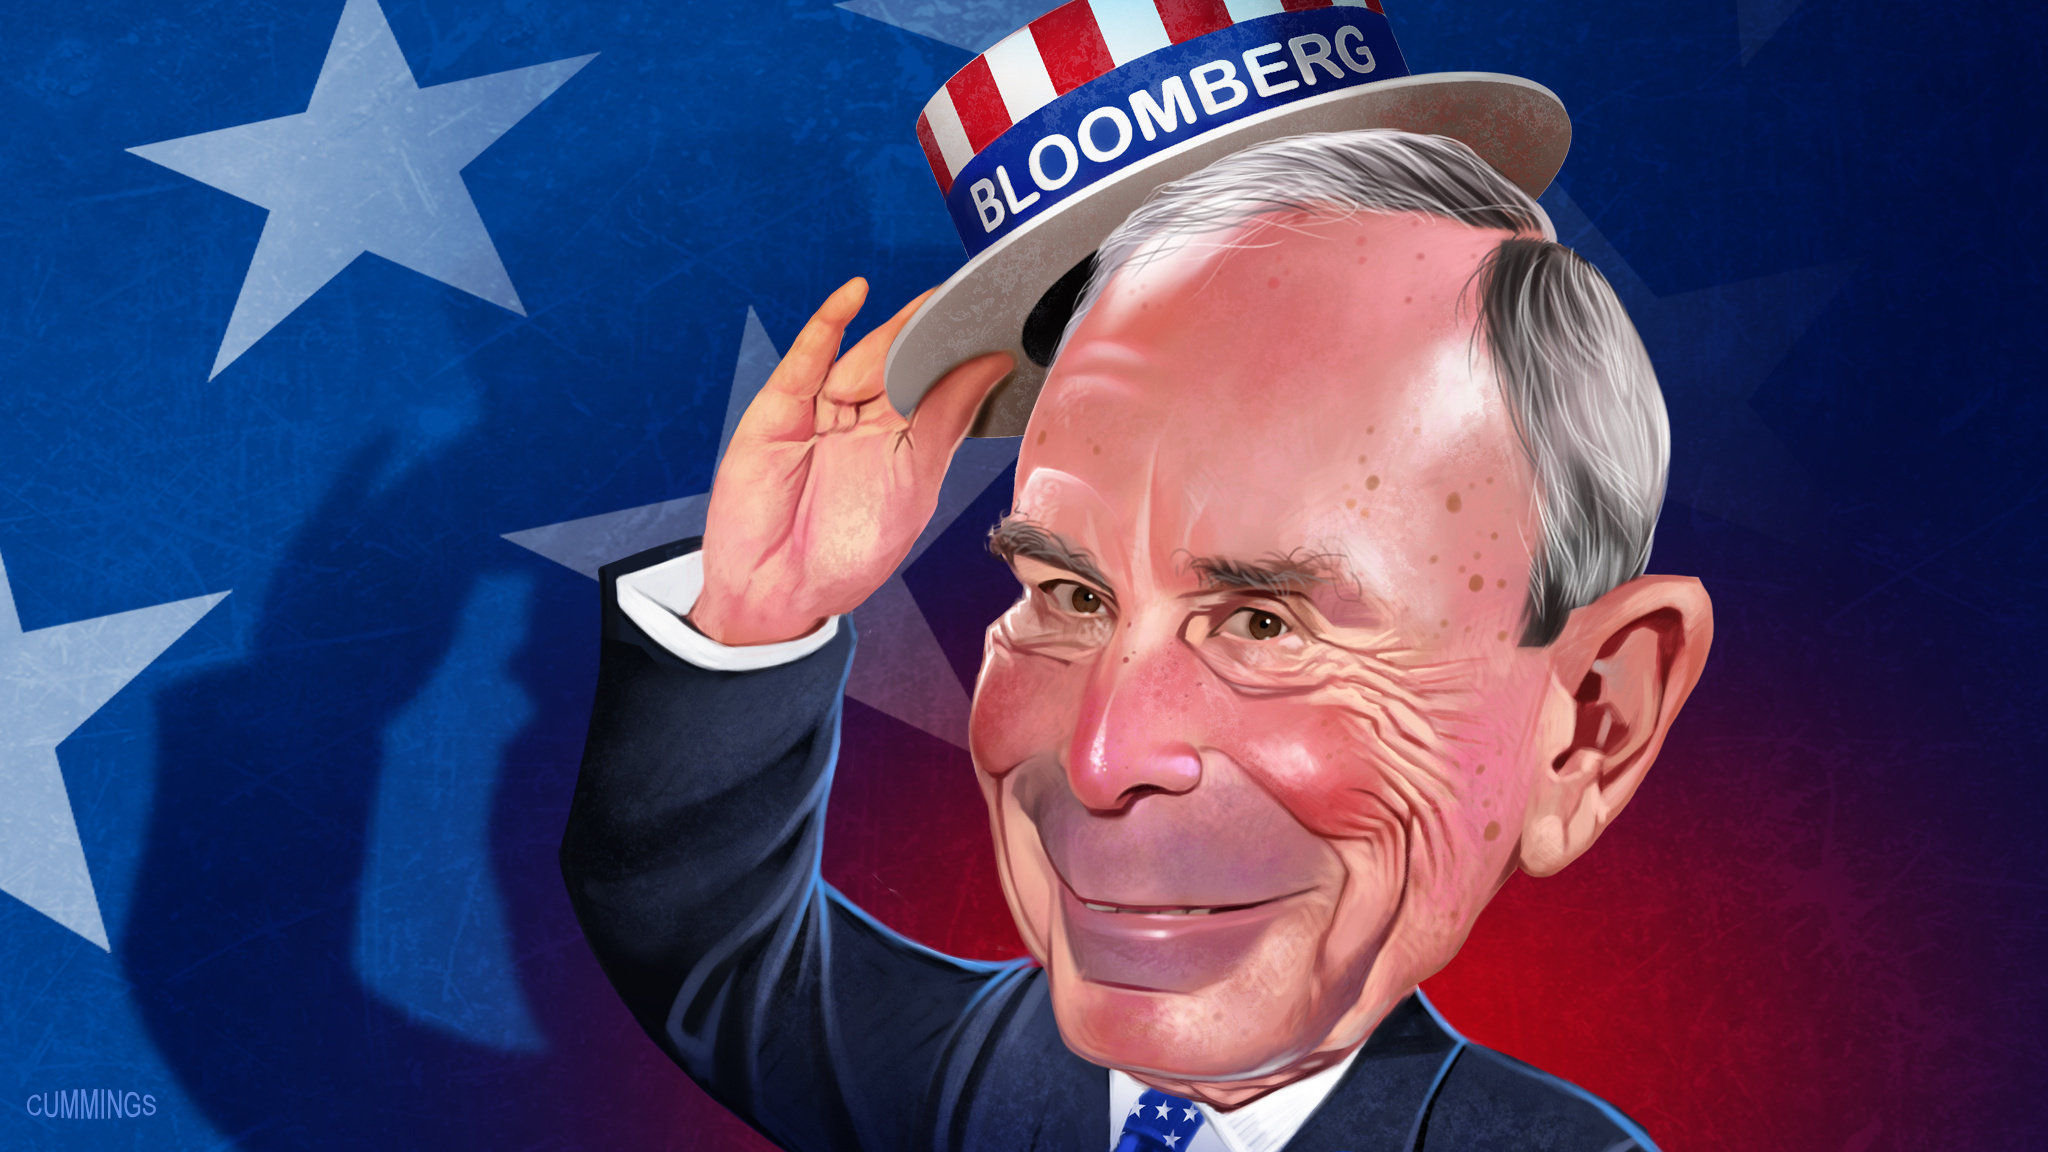 Summer Cummings 2020.Michael Bloomberg The Magnate Shaking Up The 2020 Election